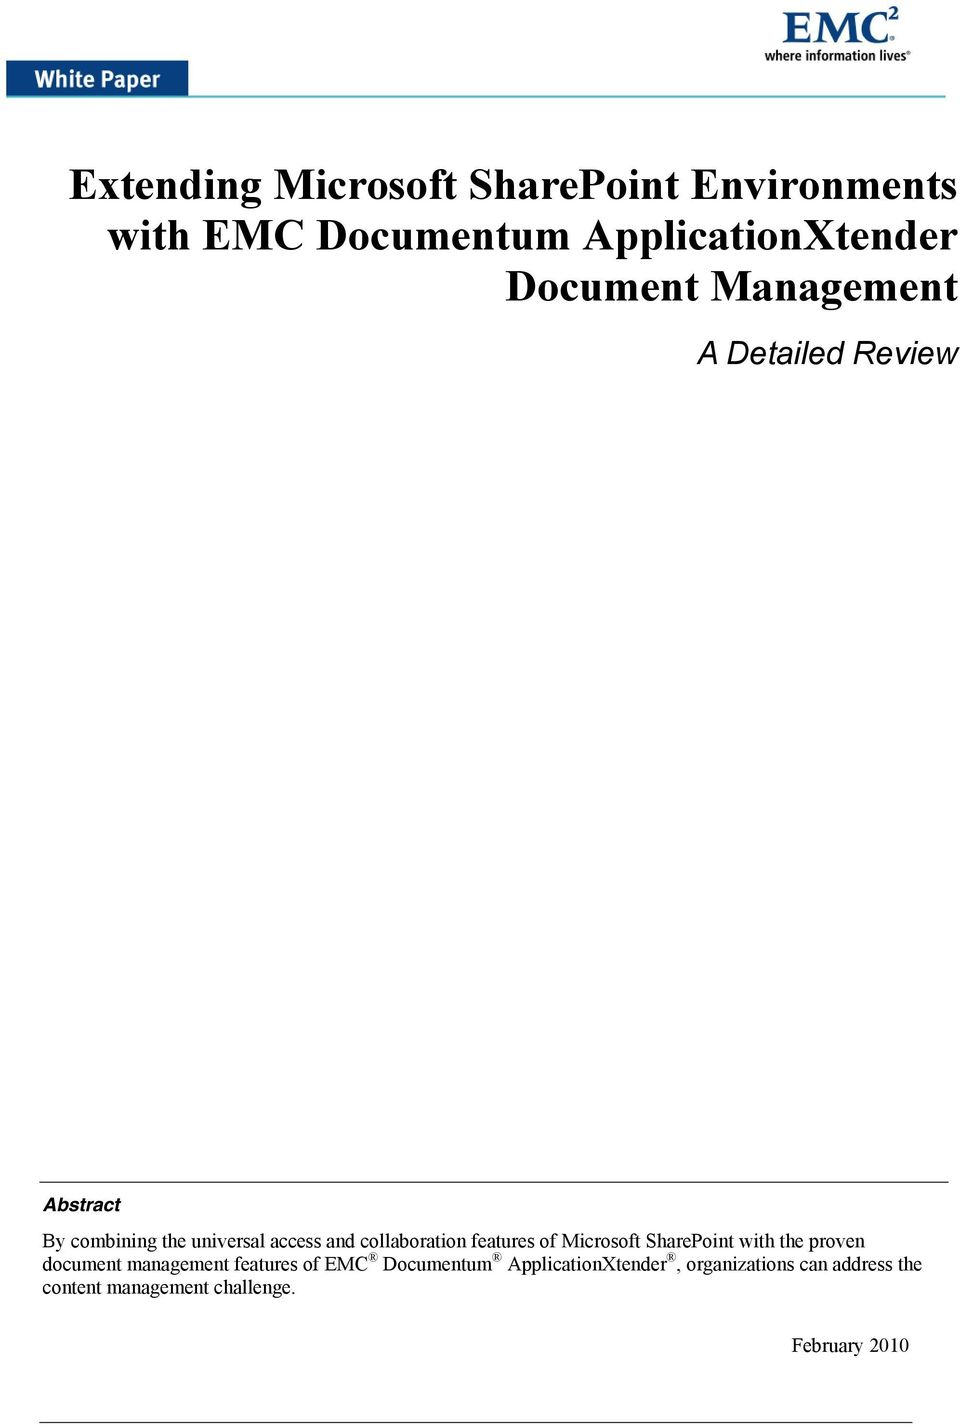 of Microsoft SharePoint with the proven document management features of EMC Documentum